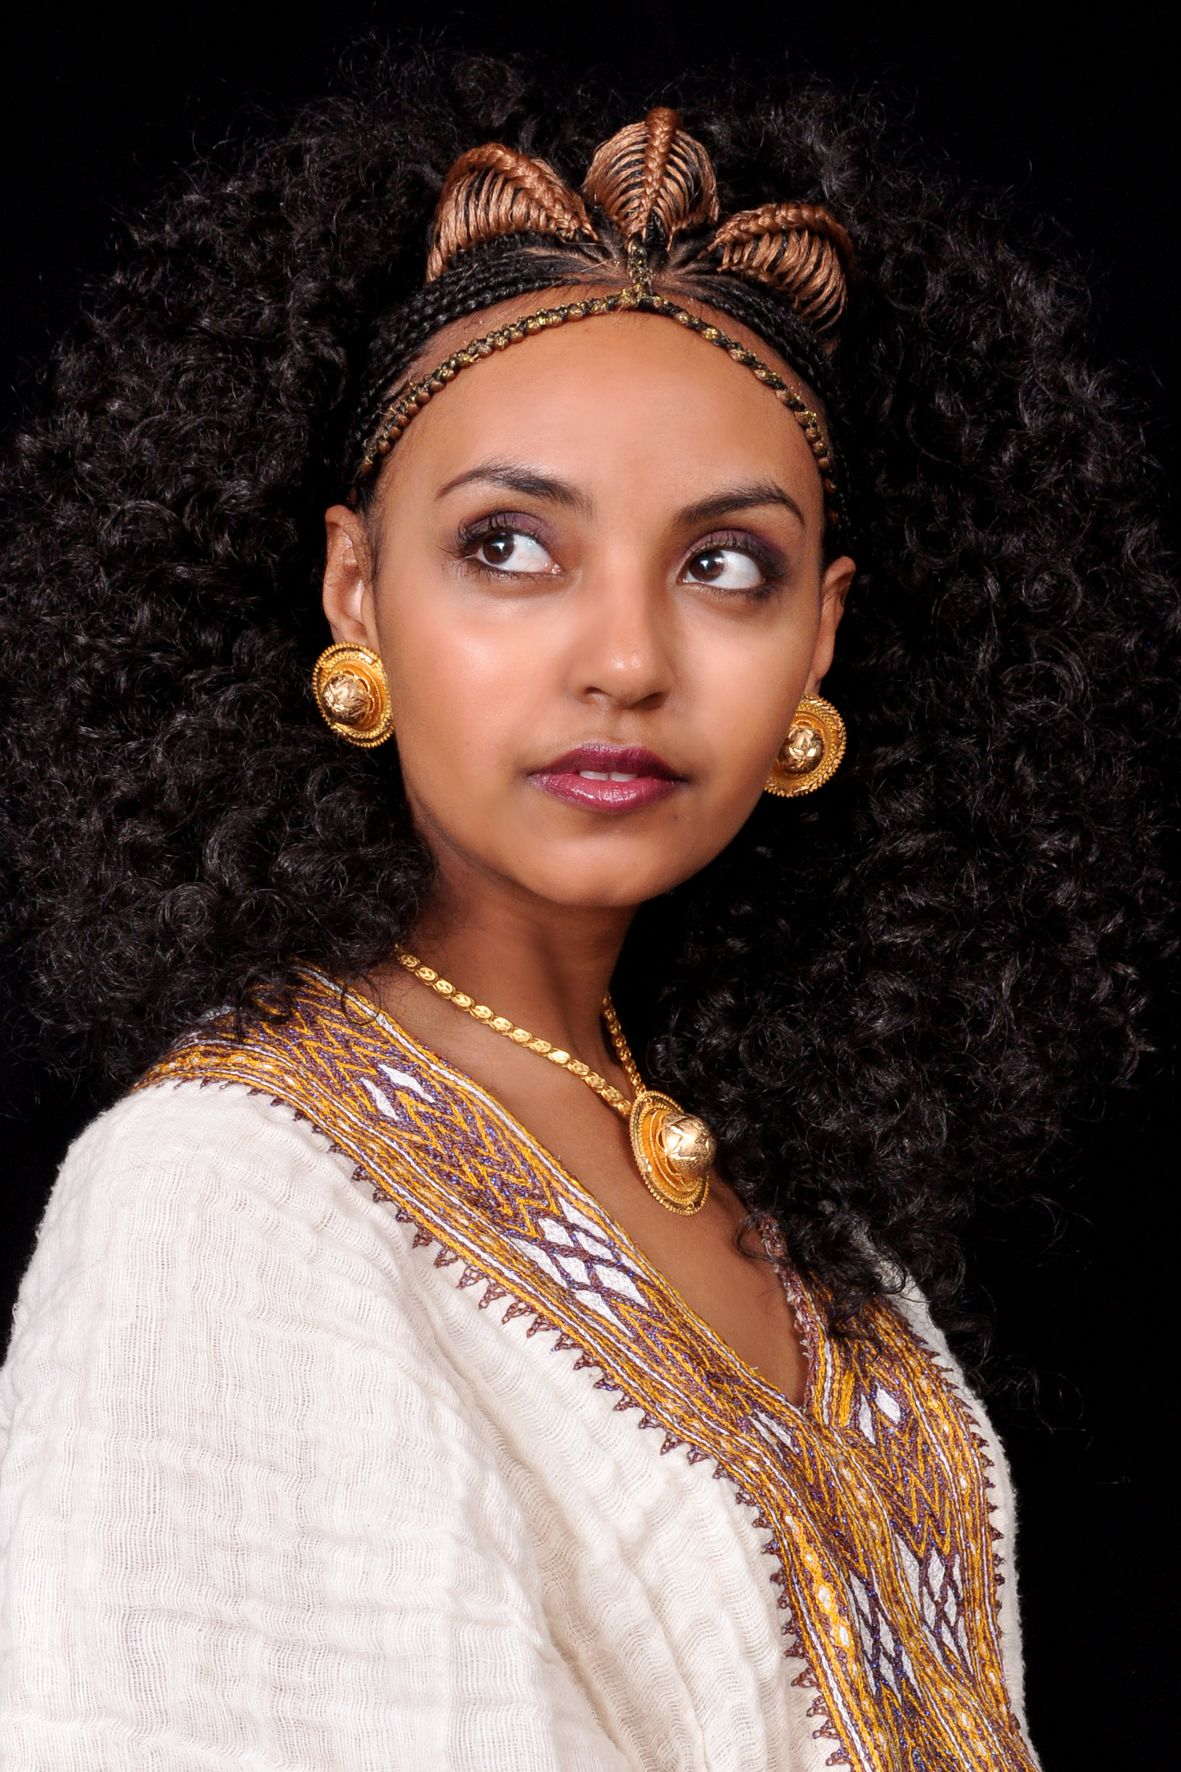 Habesha Bride Cultural Hairstyles Pinterest Africans Ethiopian Beauty And Hair Style